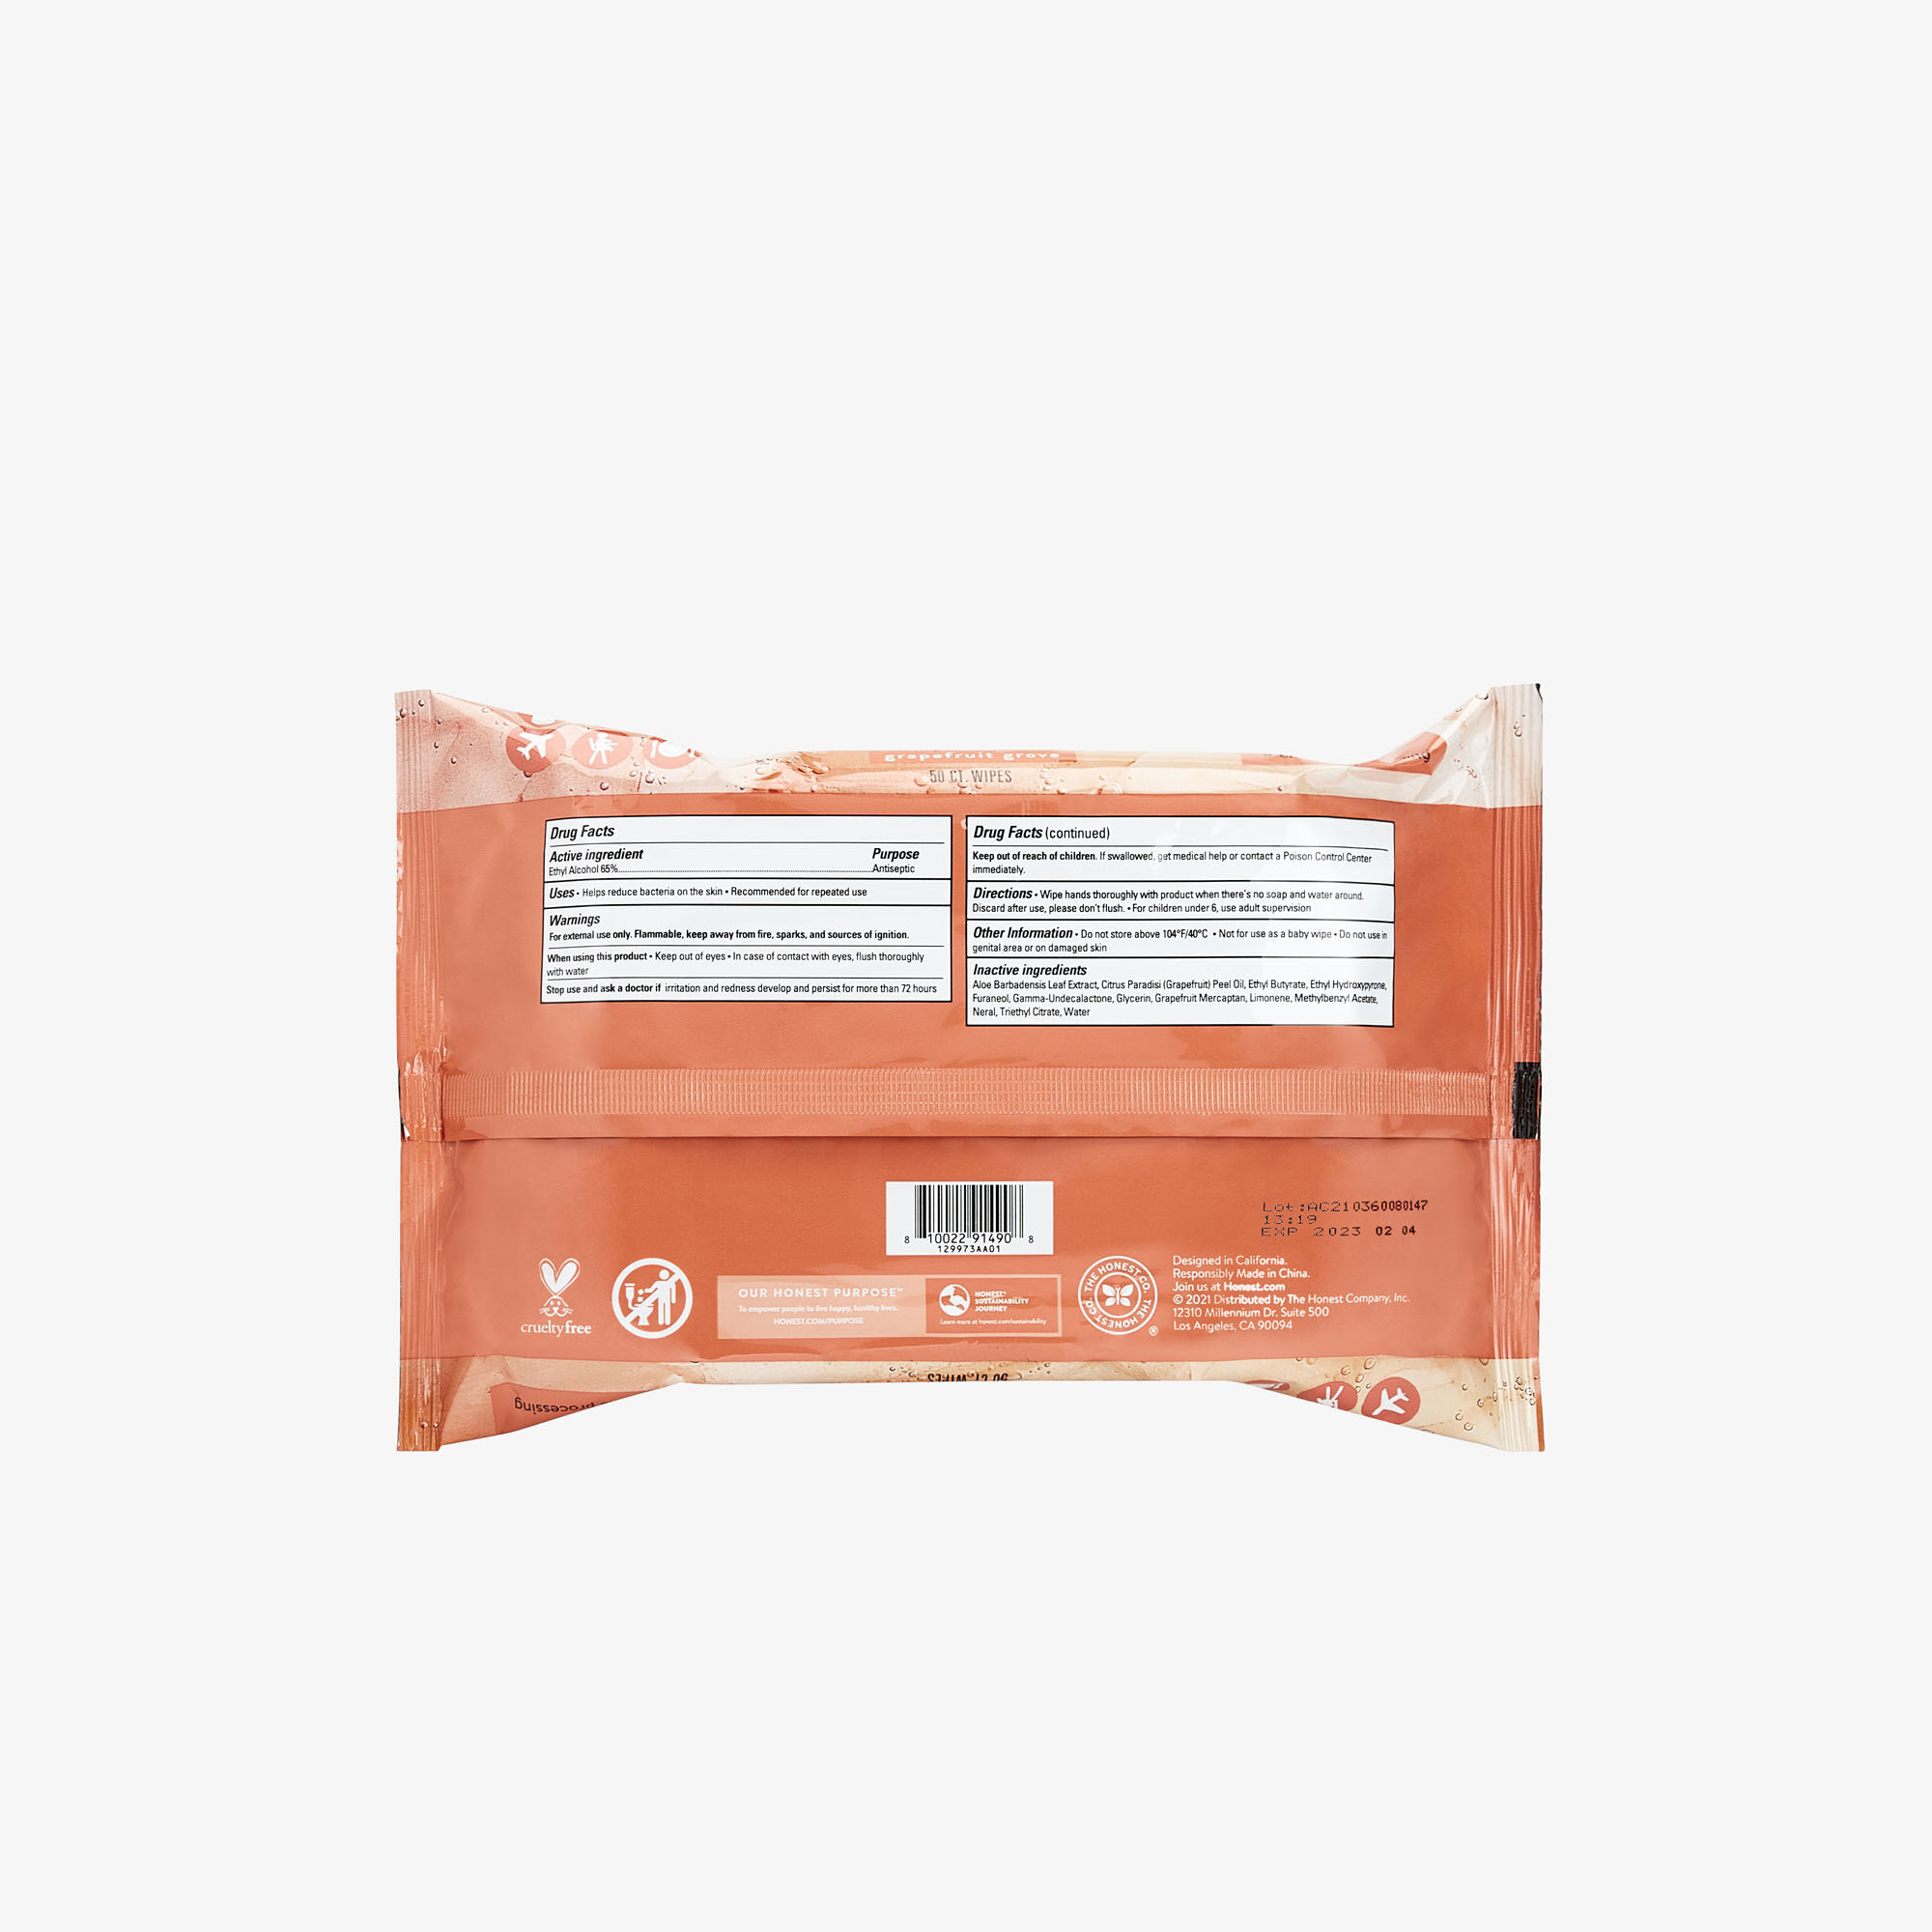 Sanitizing Alcohol Wipes, 50 Count, Grapefruit Grove